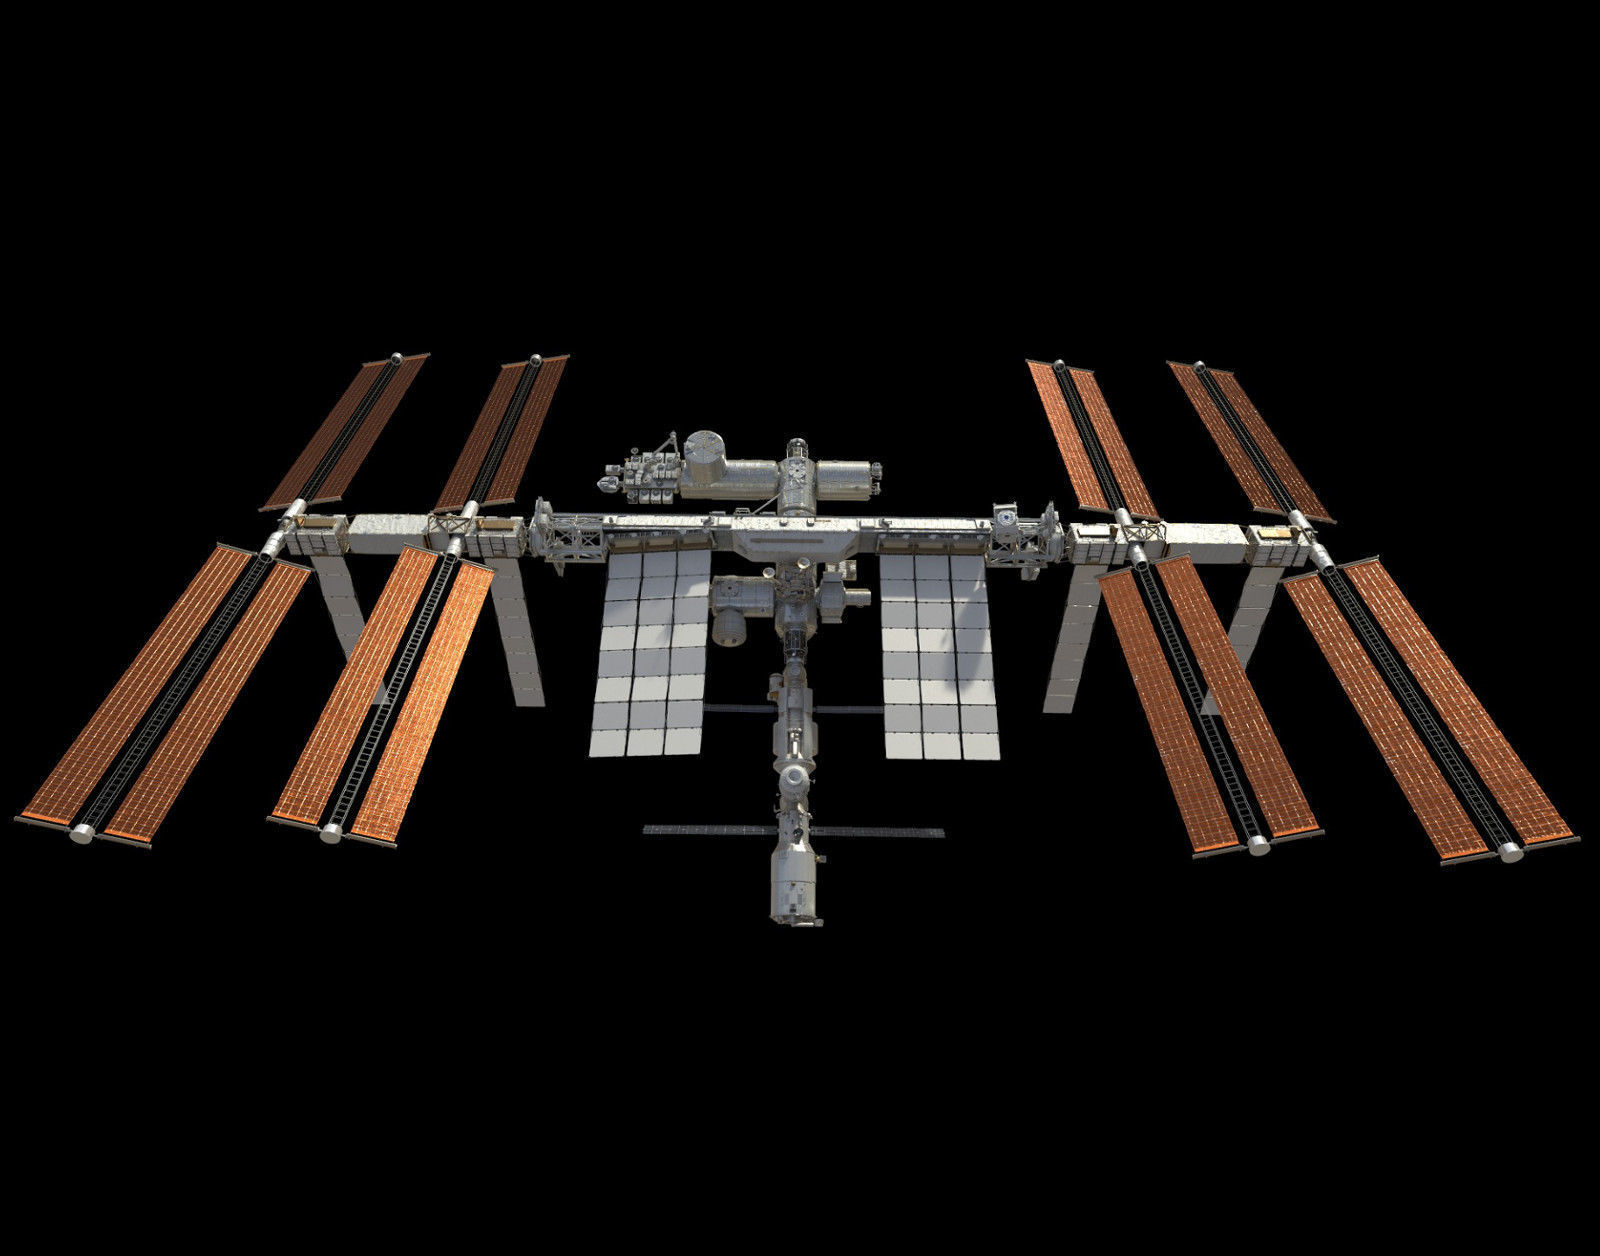 International Space Station ISS 2019